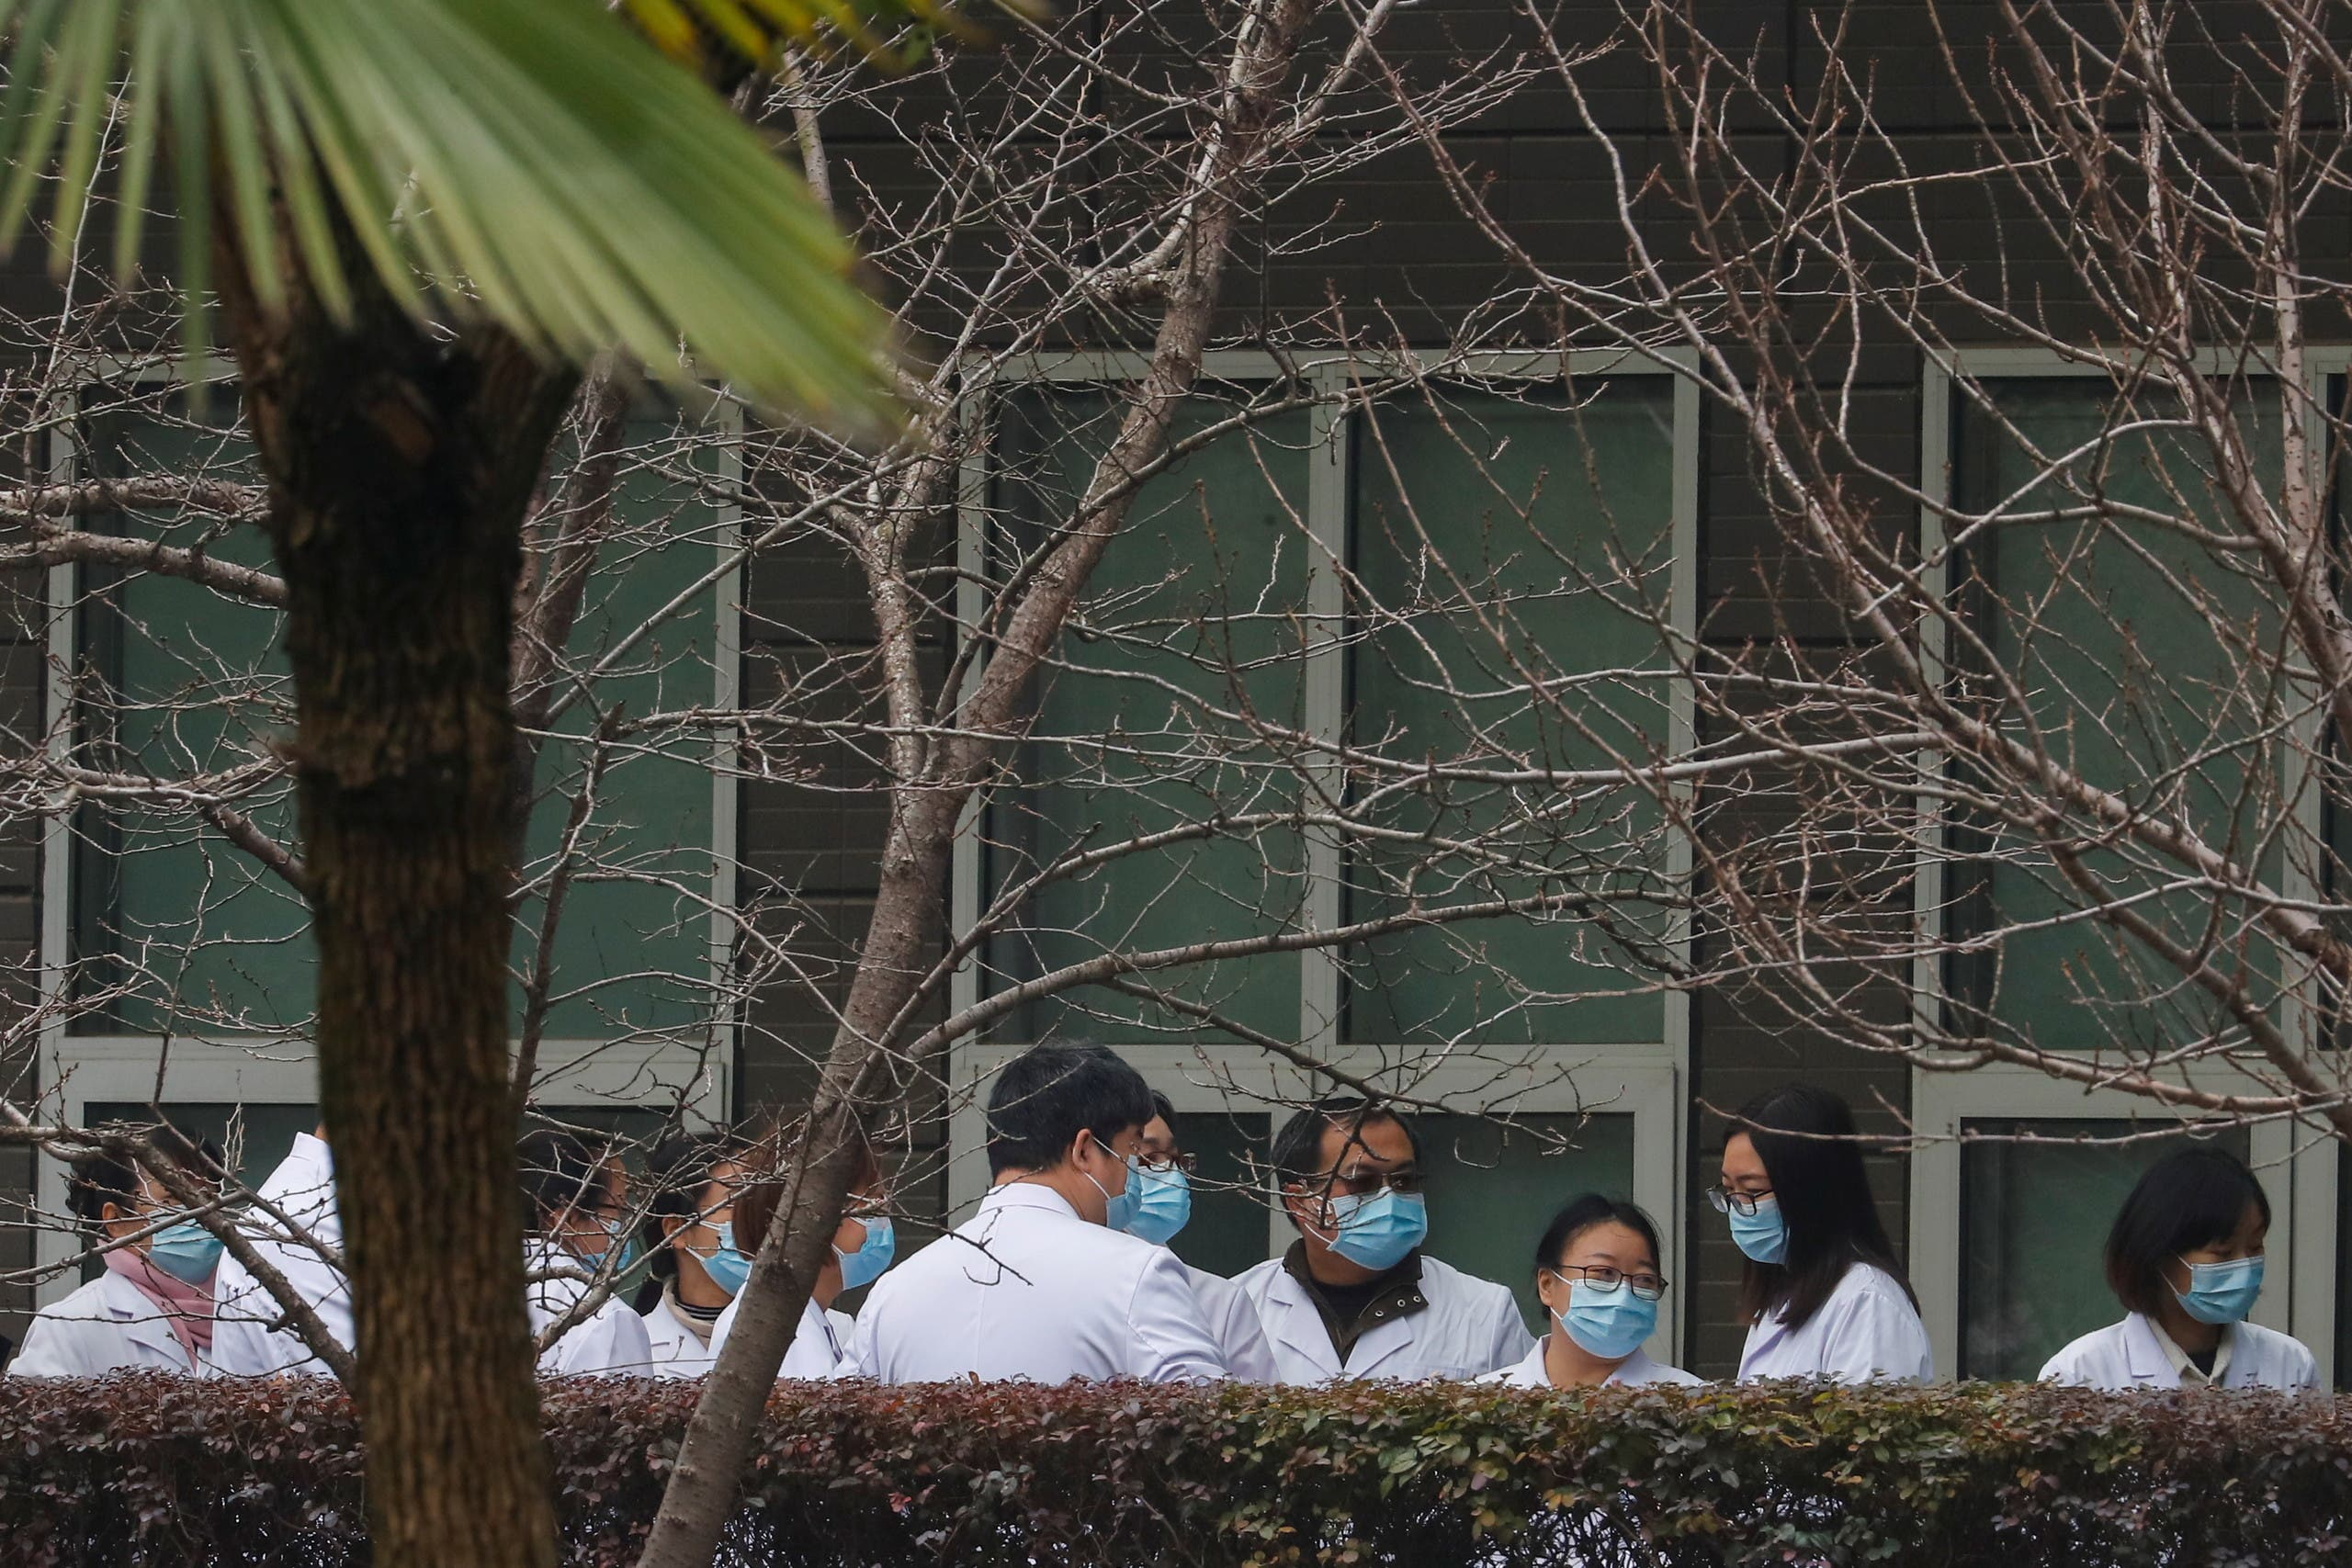 Chinese scientists and officials in lab coats wait at the Hubei Animal Epidemic Disease Prevention and Control Center during a visit of a team of the World Health Organization (WHO), tasked with investigating the origins of the coronavirus disease (COVID-19), in Wuhan, Hubei province, China February 2, 2021. (File photo: Reuters)